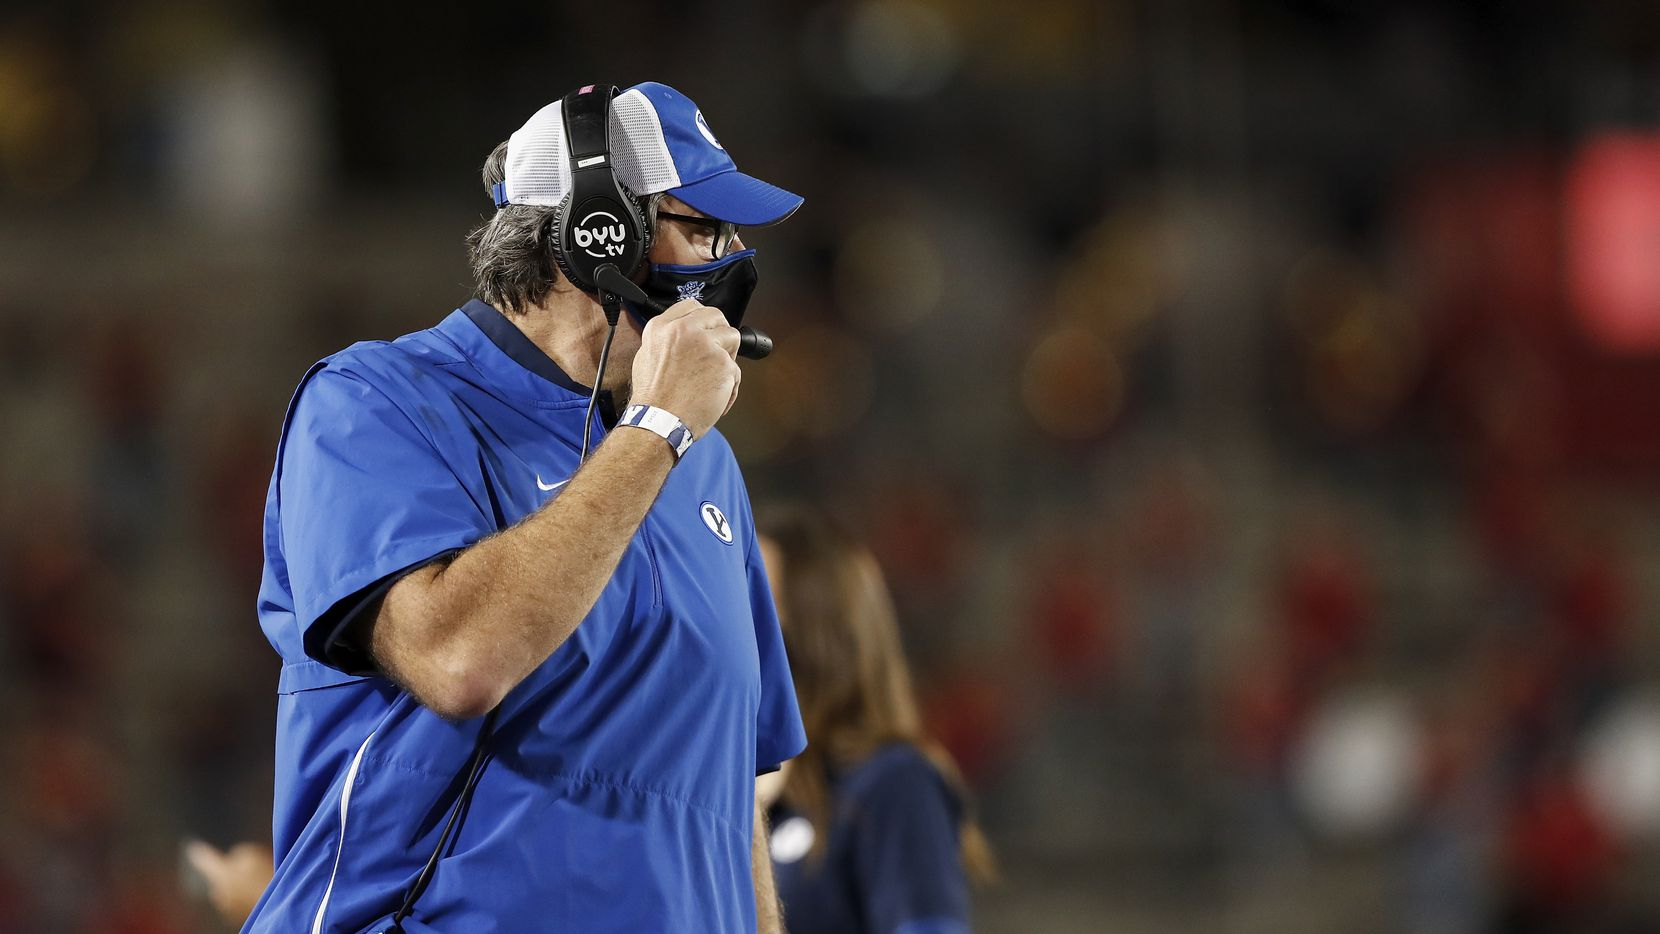 HOUSTON, TEXAS - OCTOBER 16: Offensive coordinator Jeff Grimes of the BYU Cougars reacts in the first half against the Houston Cougars at TDECU Stadium on October 16, 2020 in Houston, Texas.